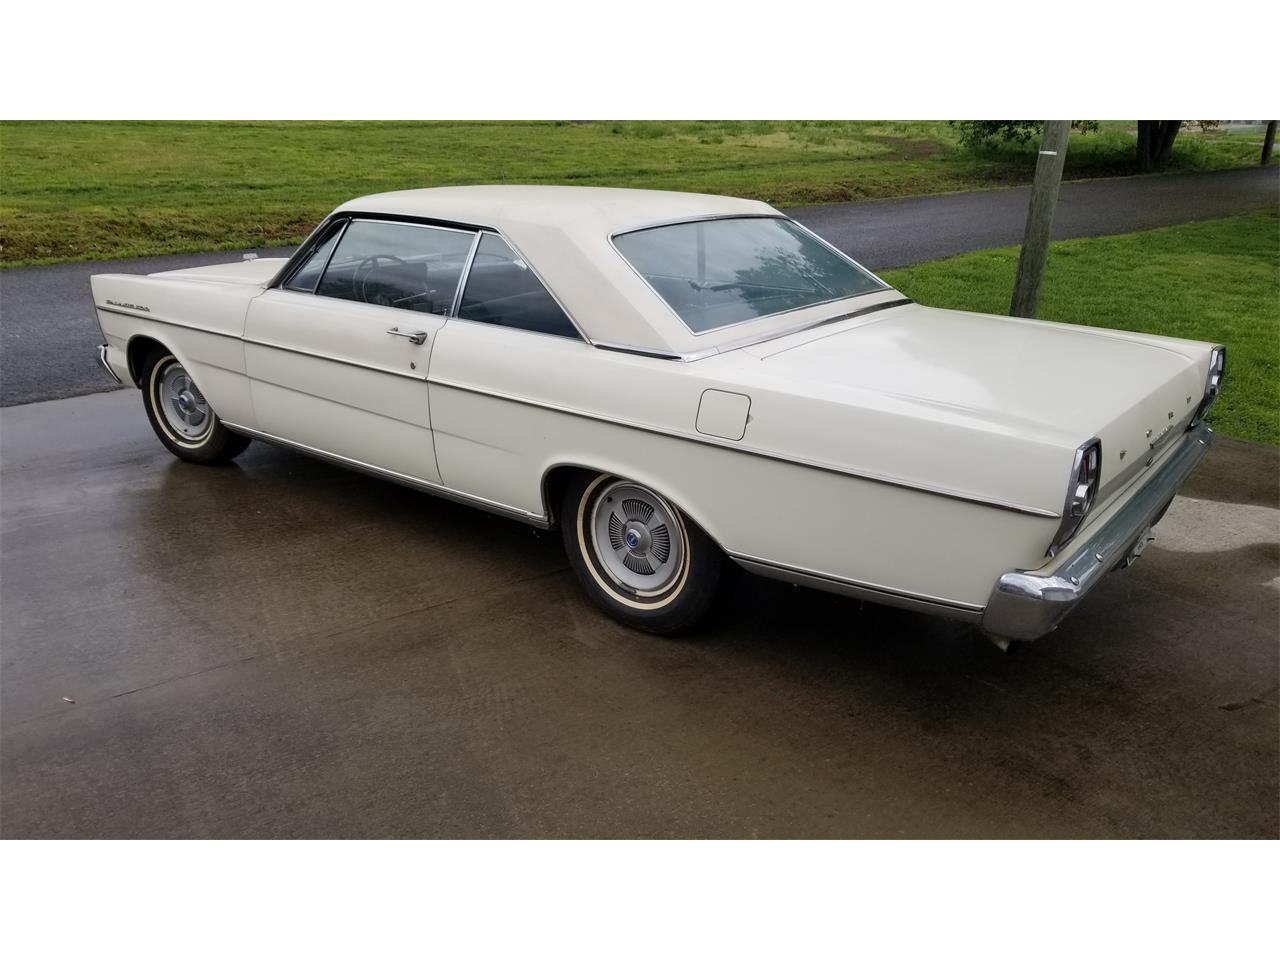 Large Picture of Classic 1965 Ford Galaxie 500 - $8,000.00 Offered by a Private Seller - PXPB